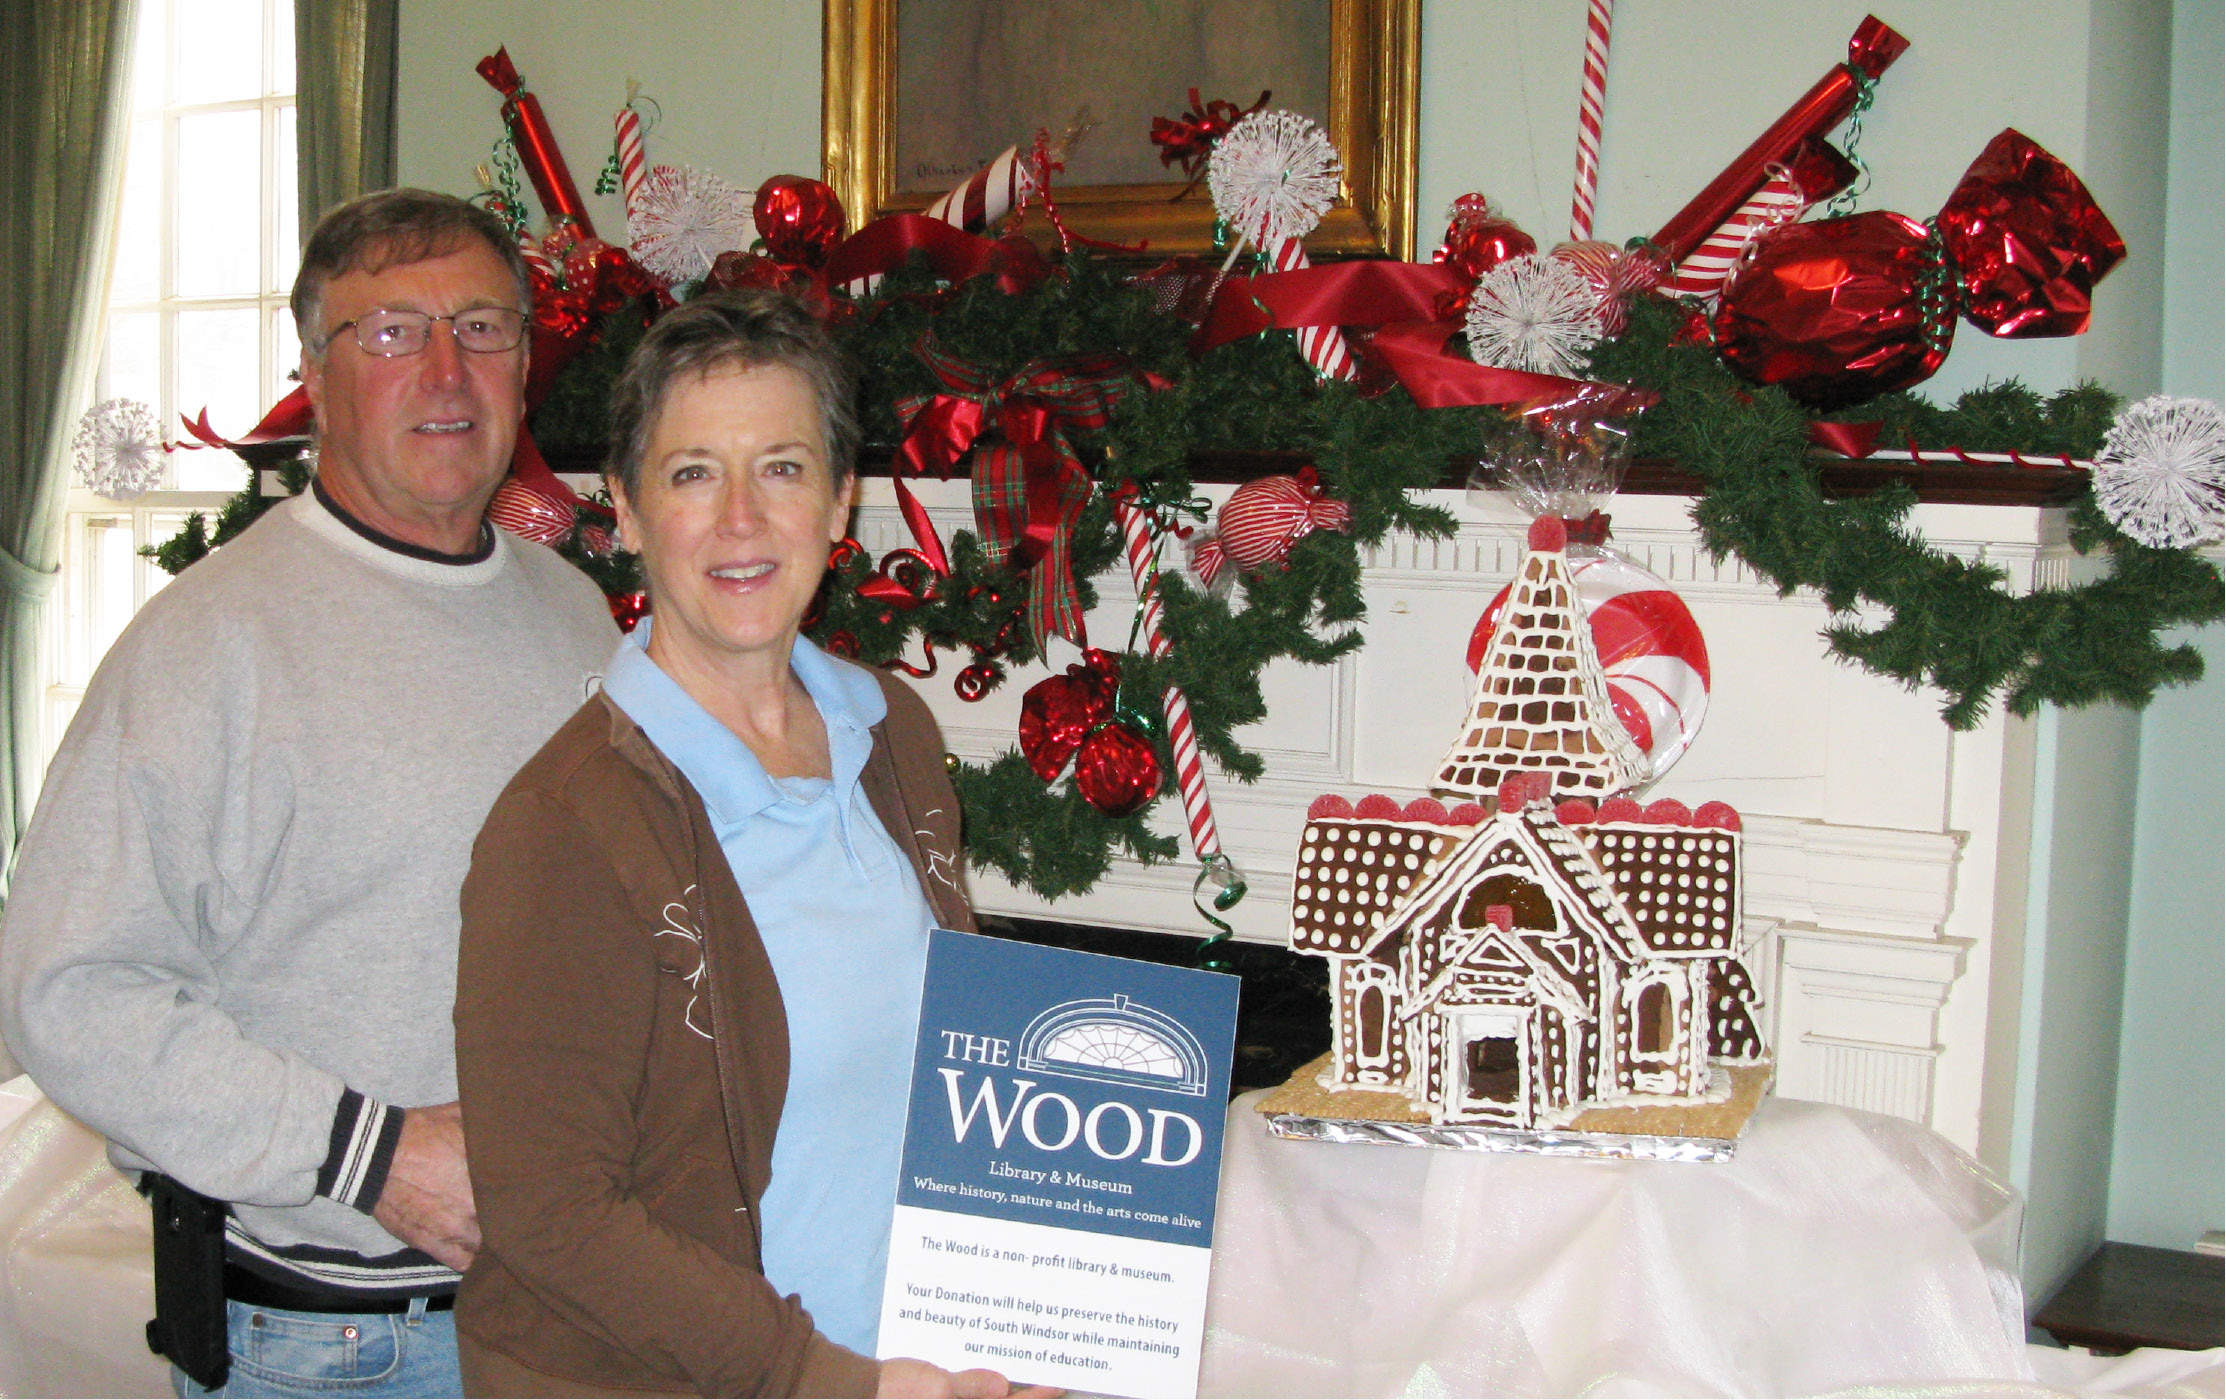 Cheshire residents Dave and Diane Calabro pose with their gingerbread creation, a donation to the Wood Memorial Library's 6th Annual Gingerbread Festival, one of the largest of its kind in New England.